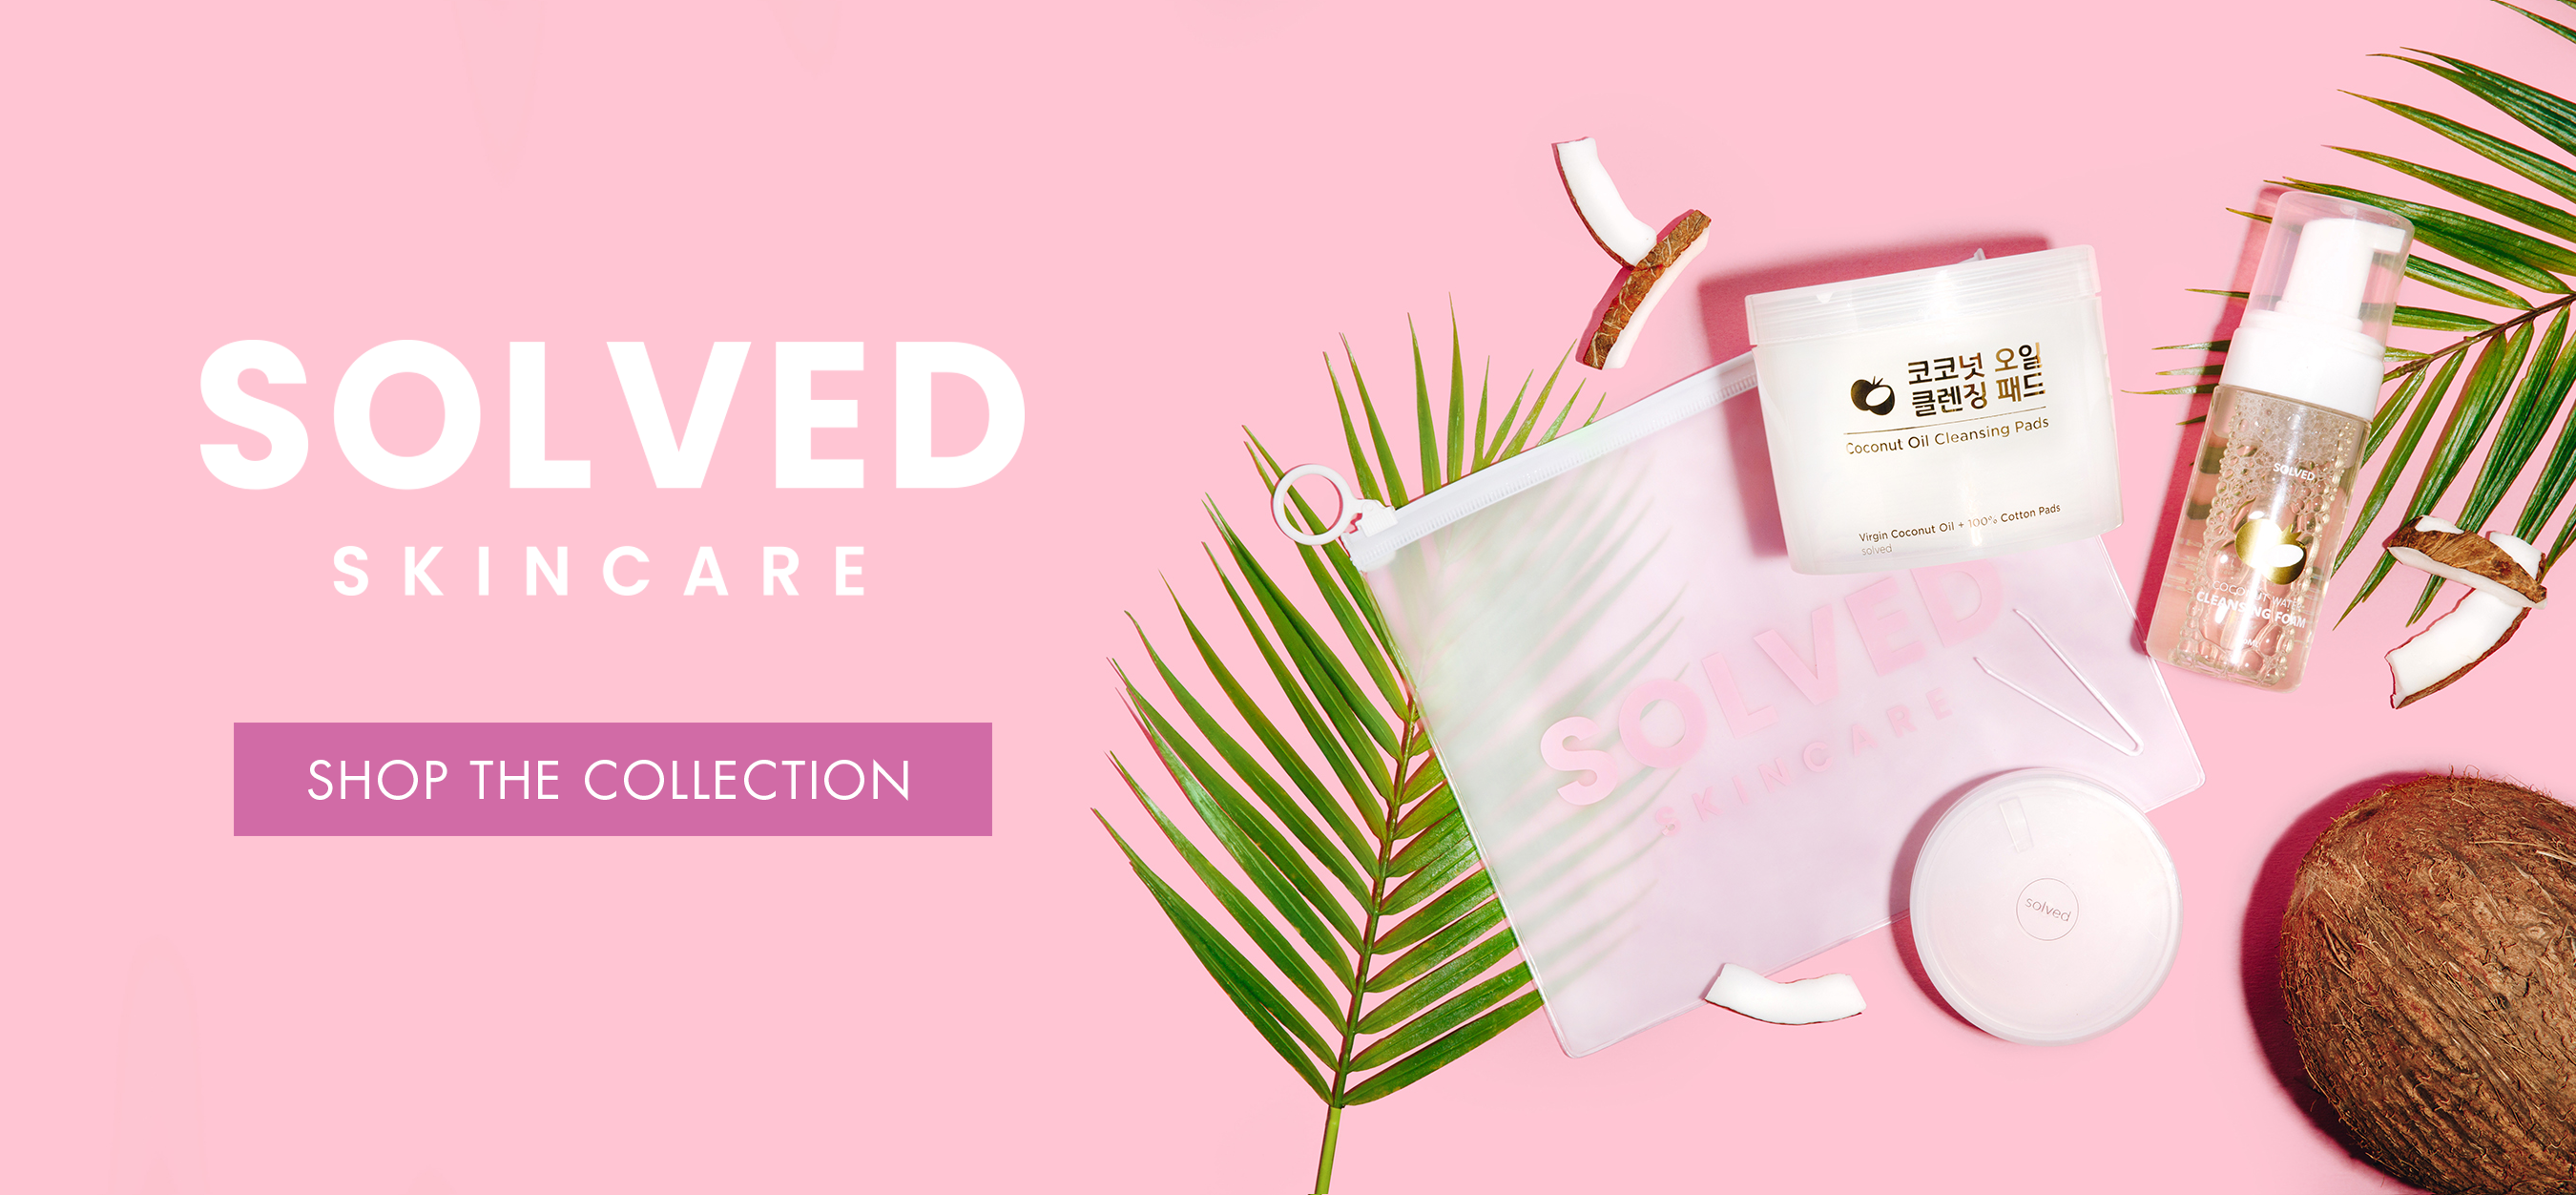 Shop the Solved skincare collection